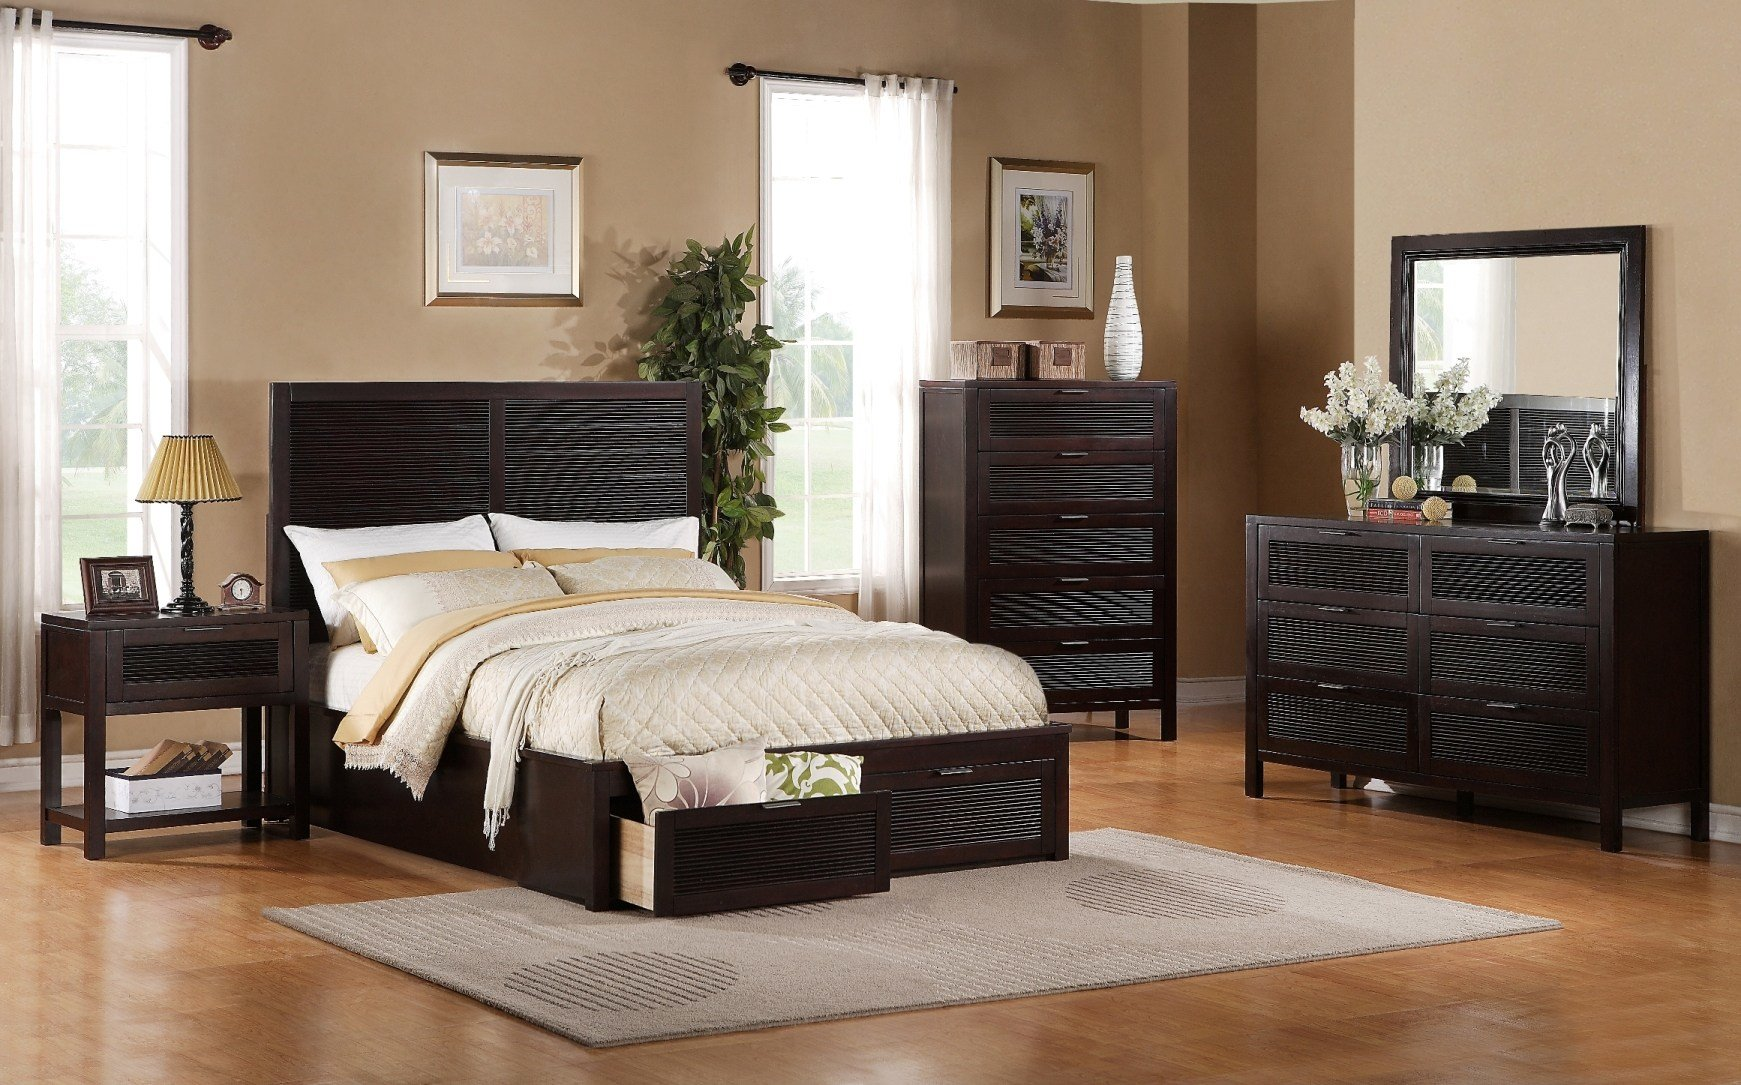 Best Bedroom Set Prices Are They Really Worth It Decorating With Pictures